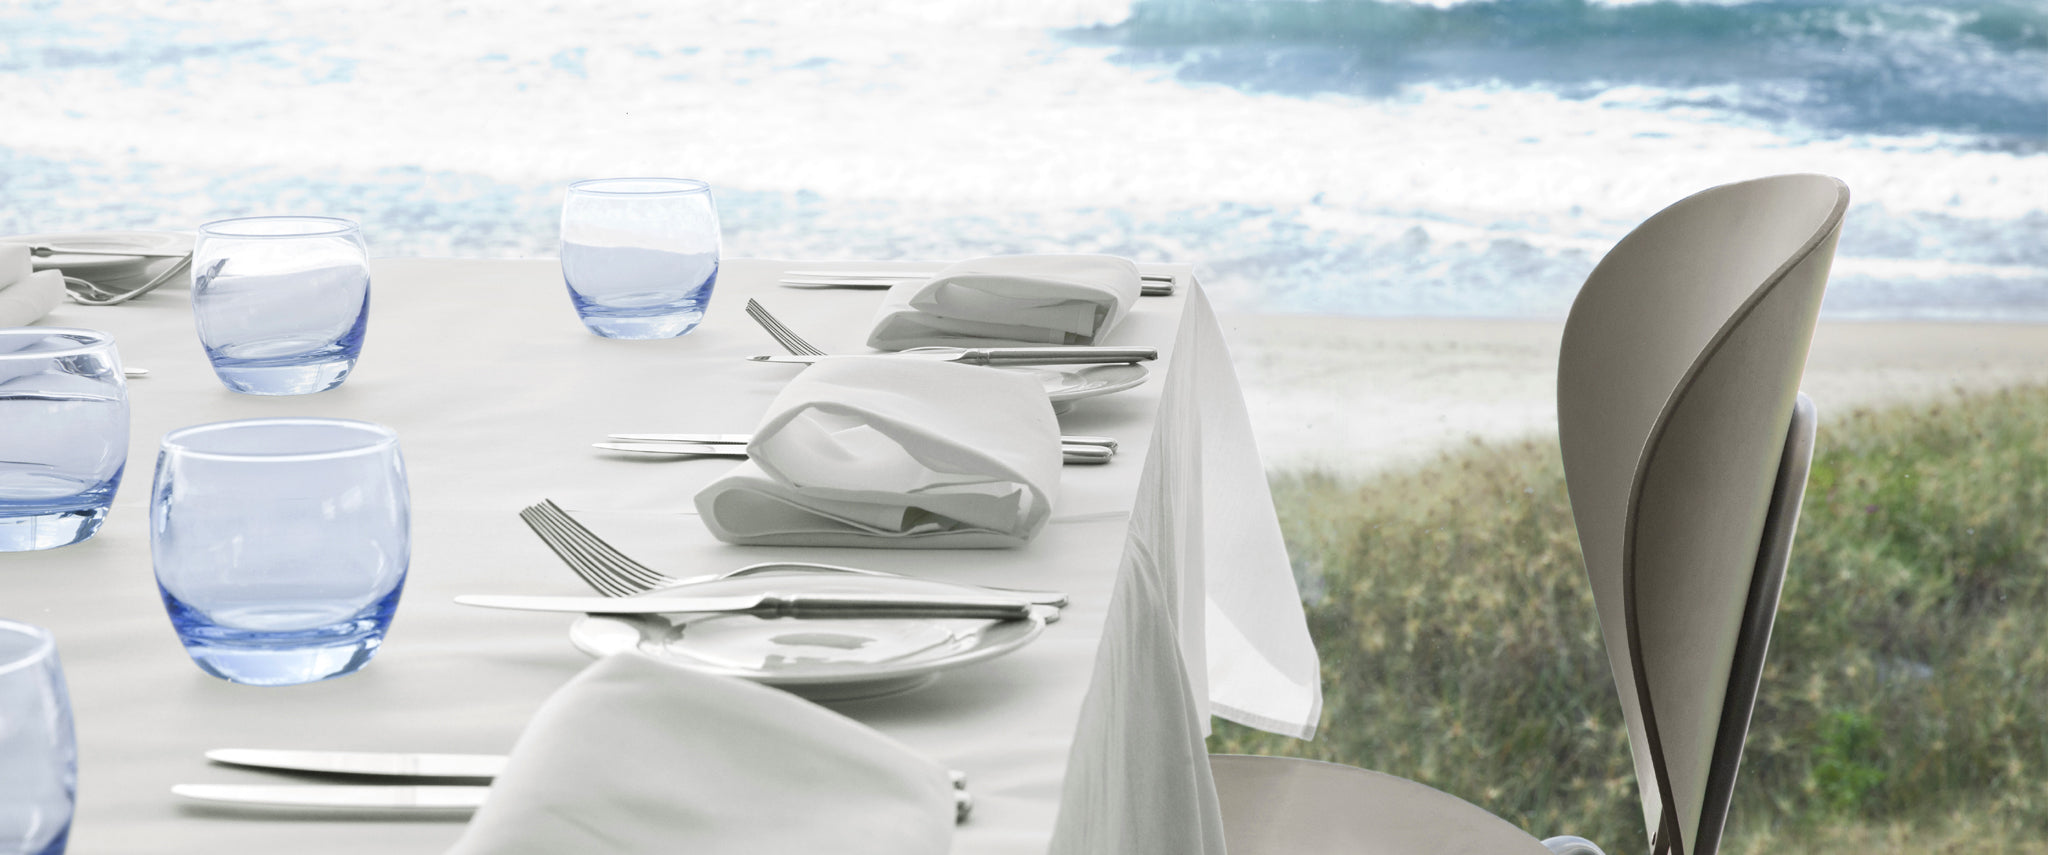 Bauhu Lifestyle outdoor tables